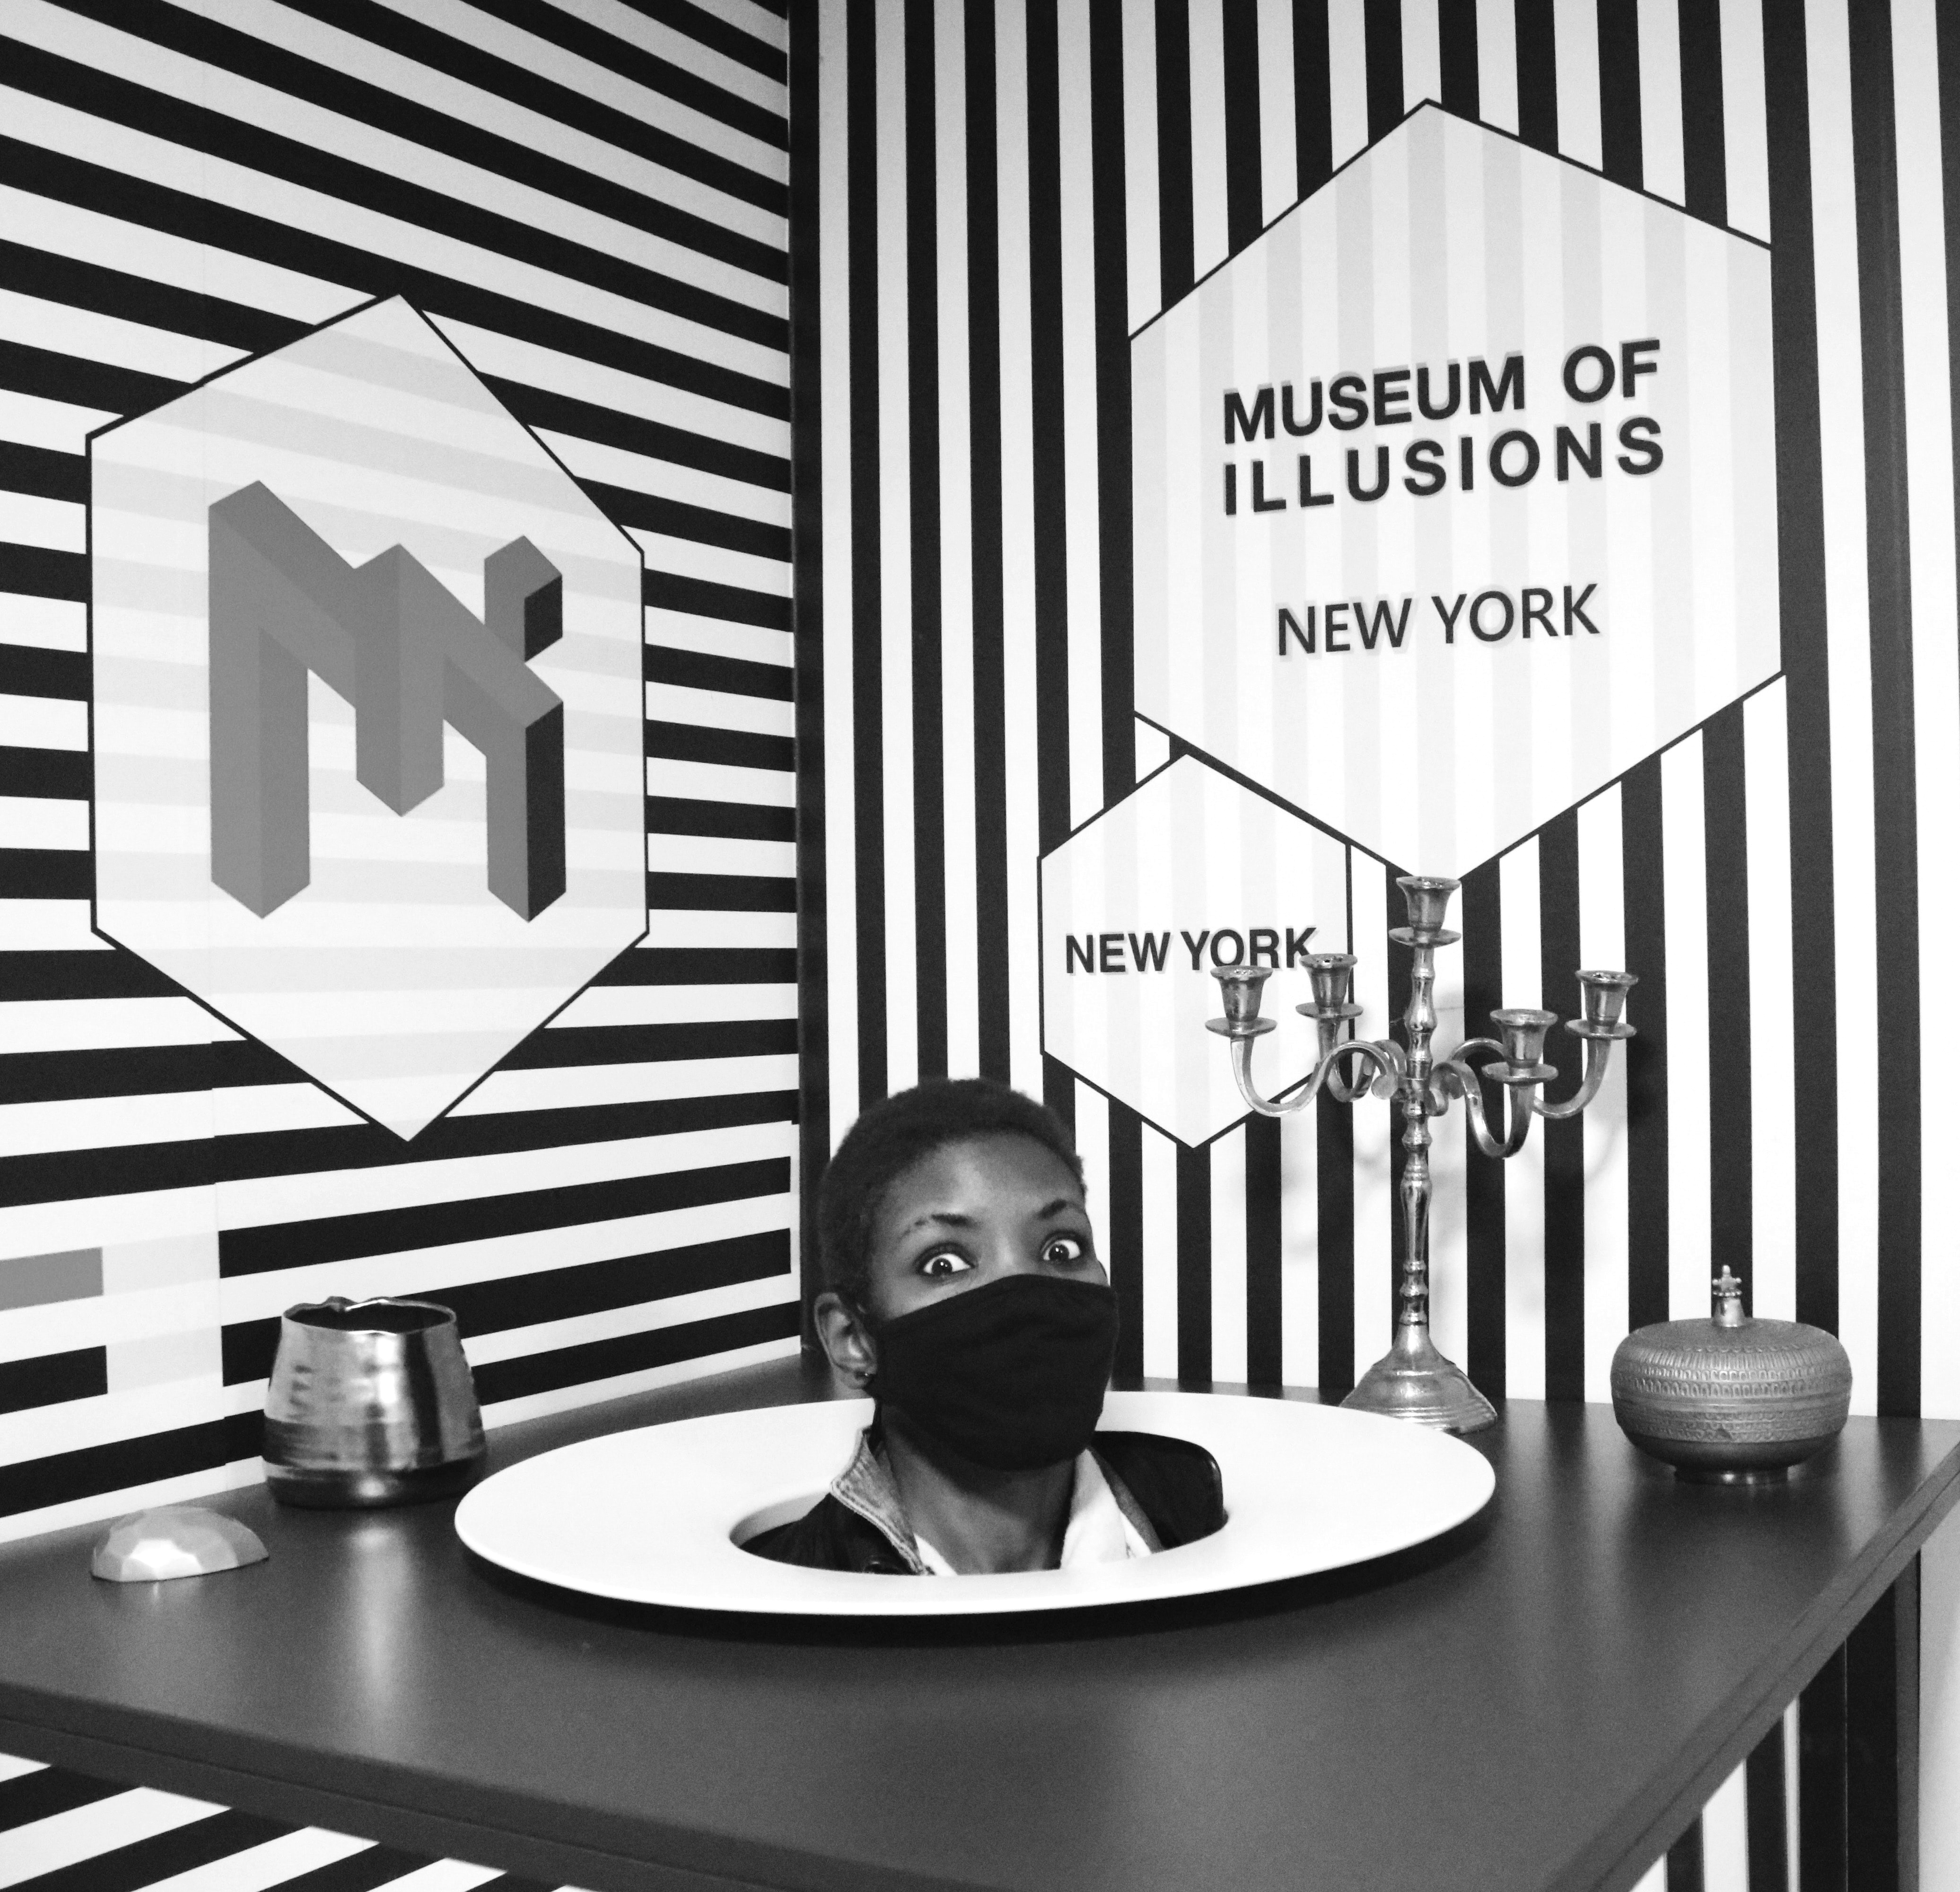 Things are not what they seem – no likelihood of confusion for MUSEUM OF ILLUSIONS